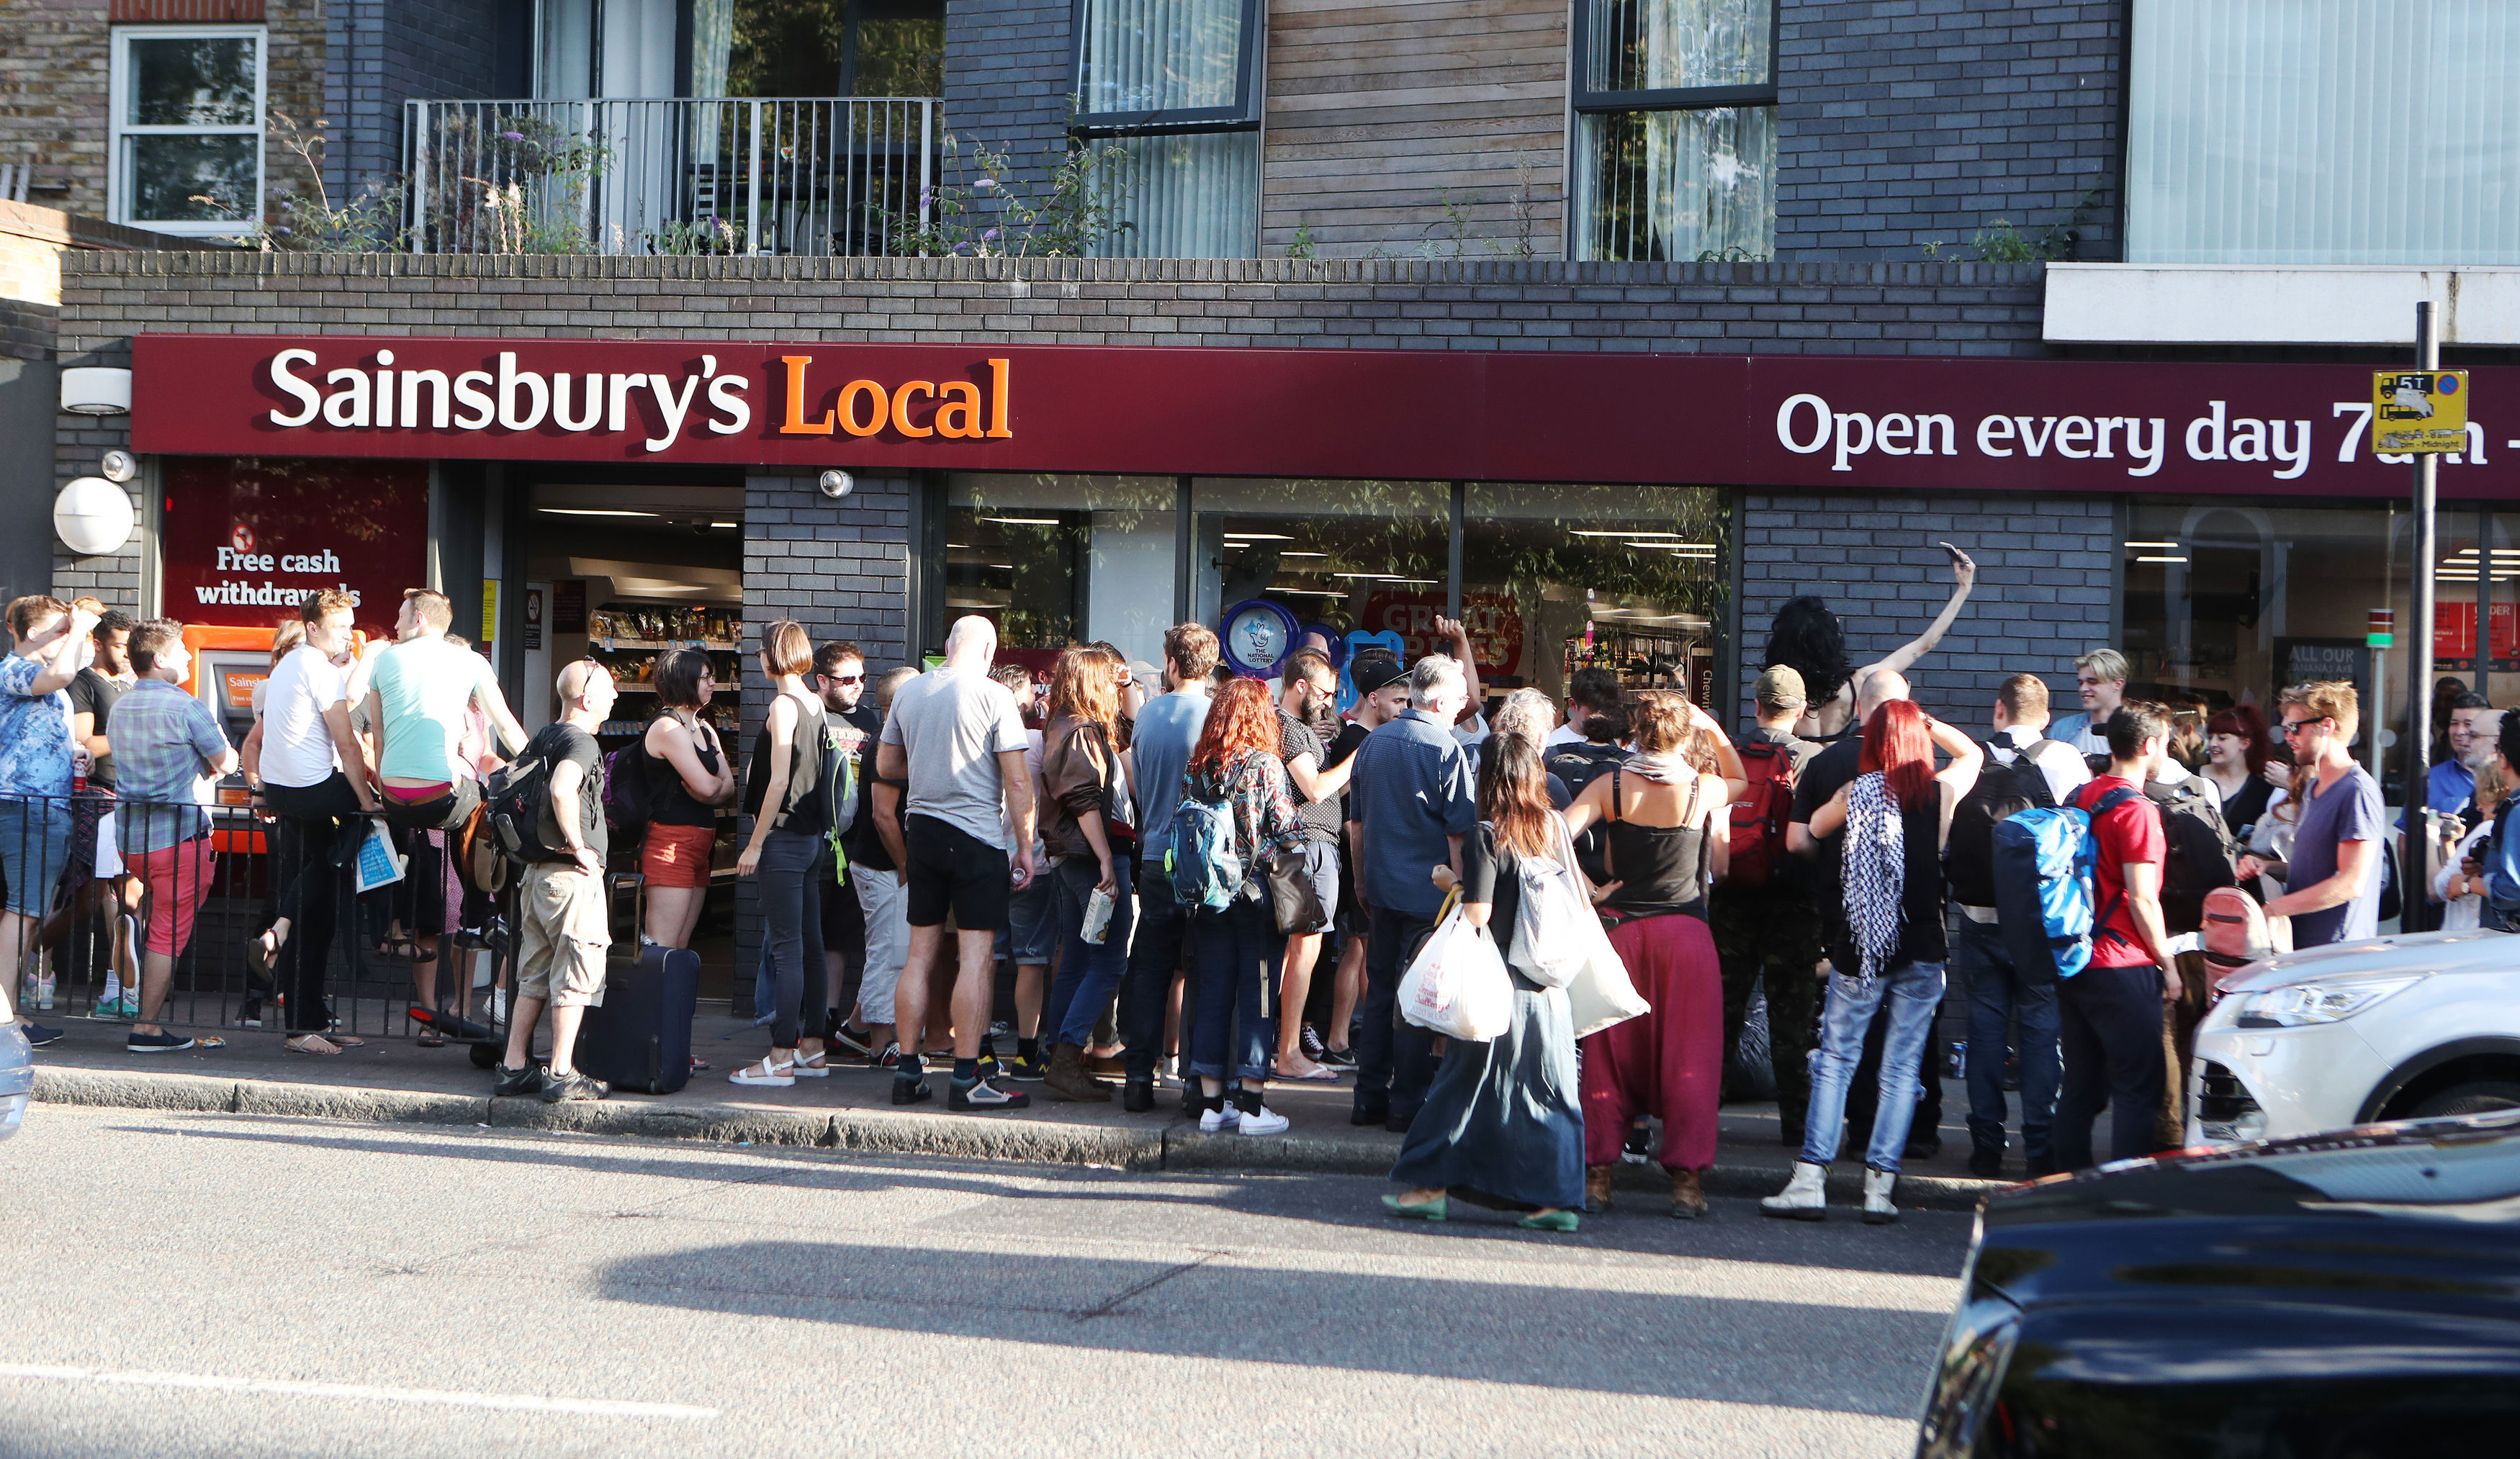 PA 28346434 Hundreds Stage Kiss In Protest After Gay Couple Kicked Out Of Sainsbury's